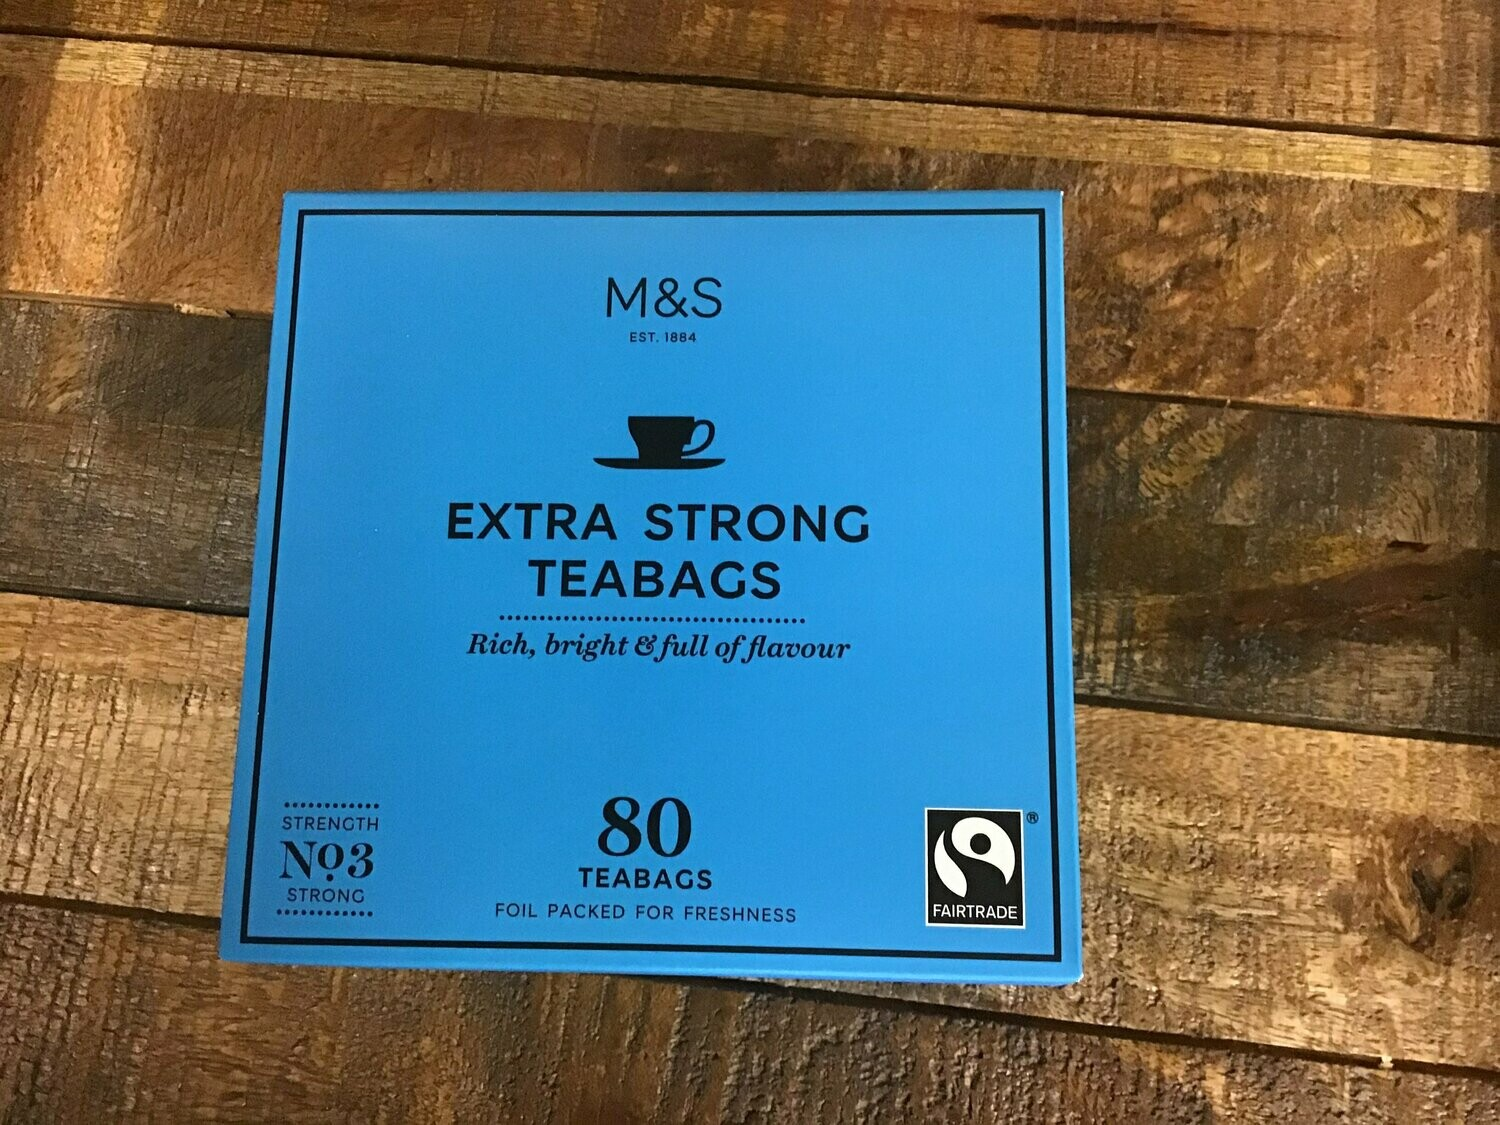 M&S Extra Strong 80 Bags 250g